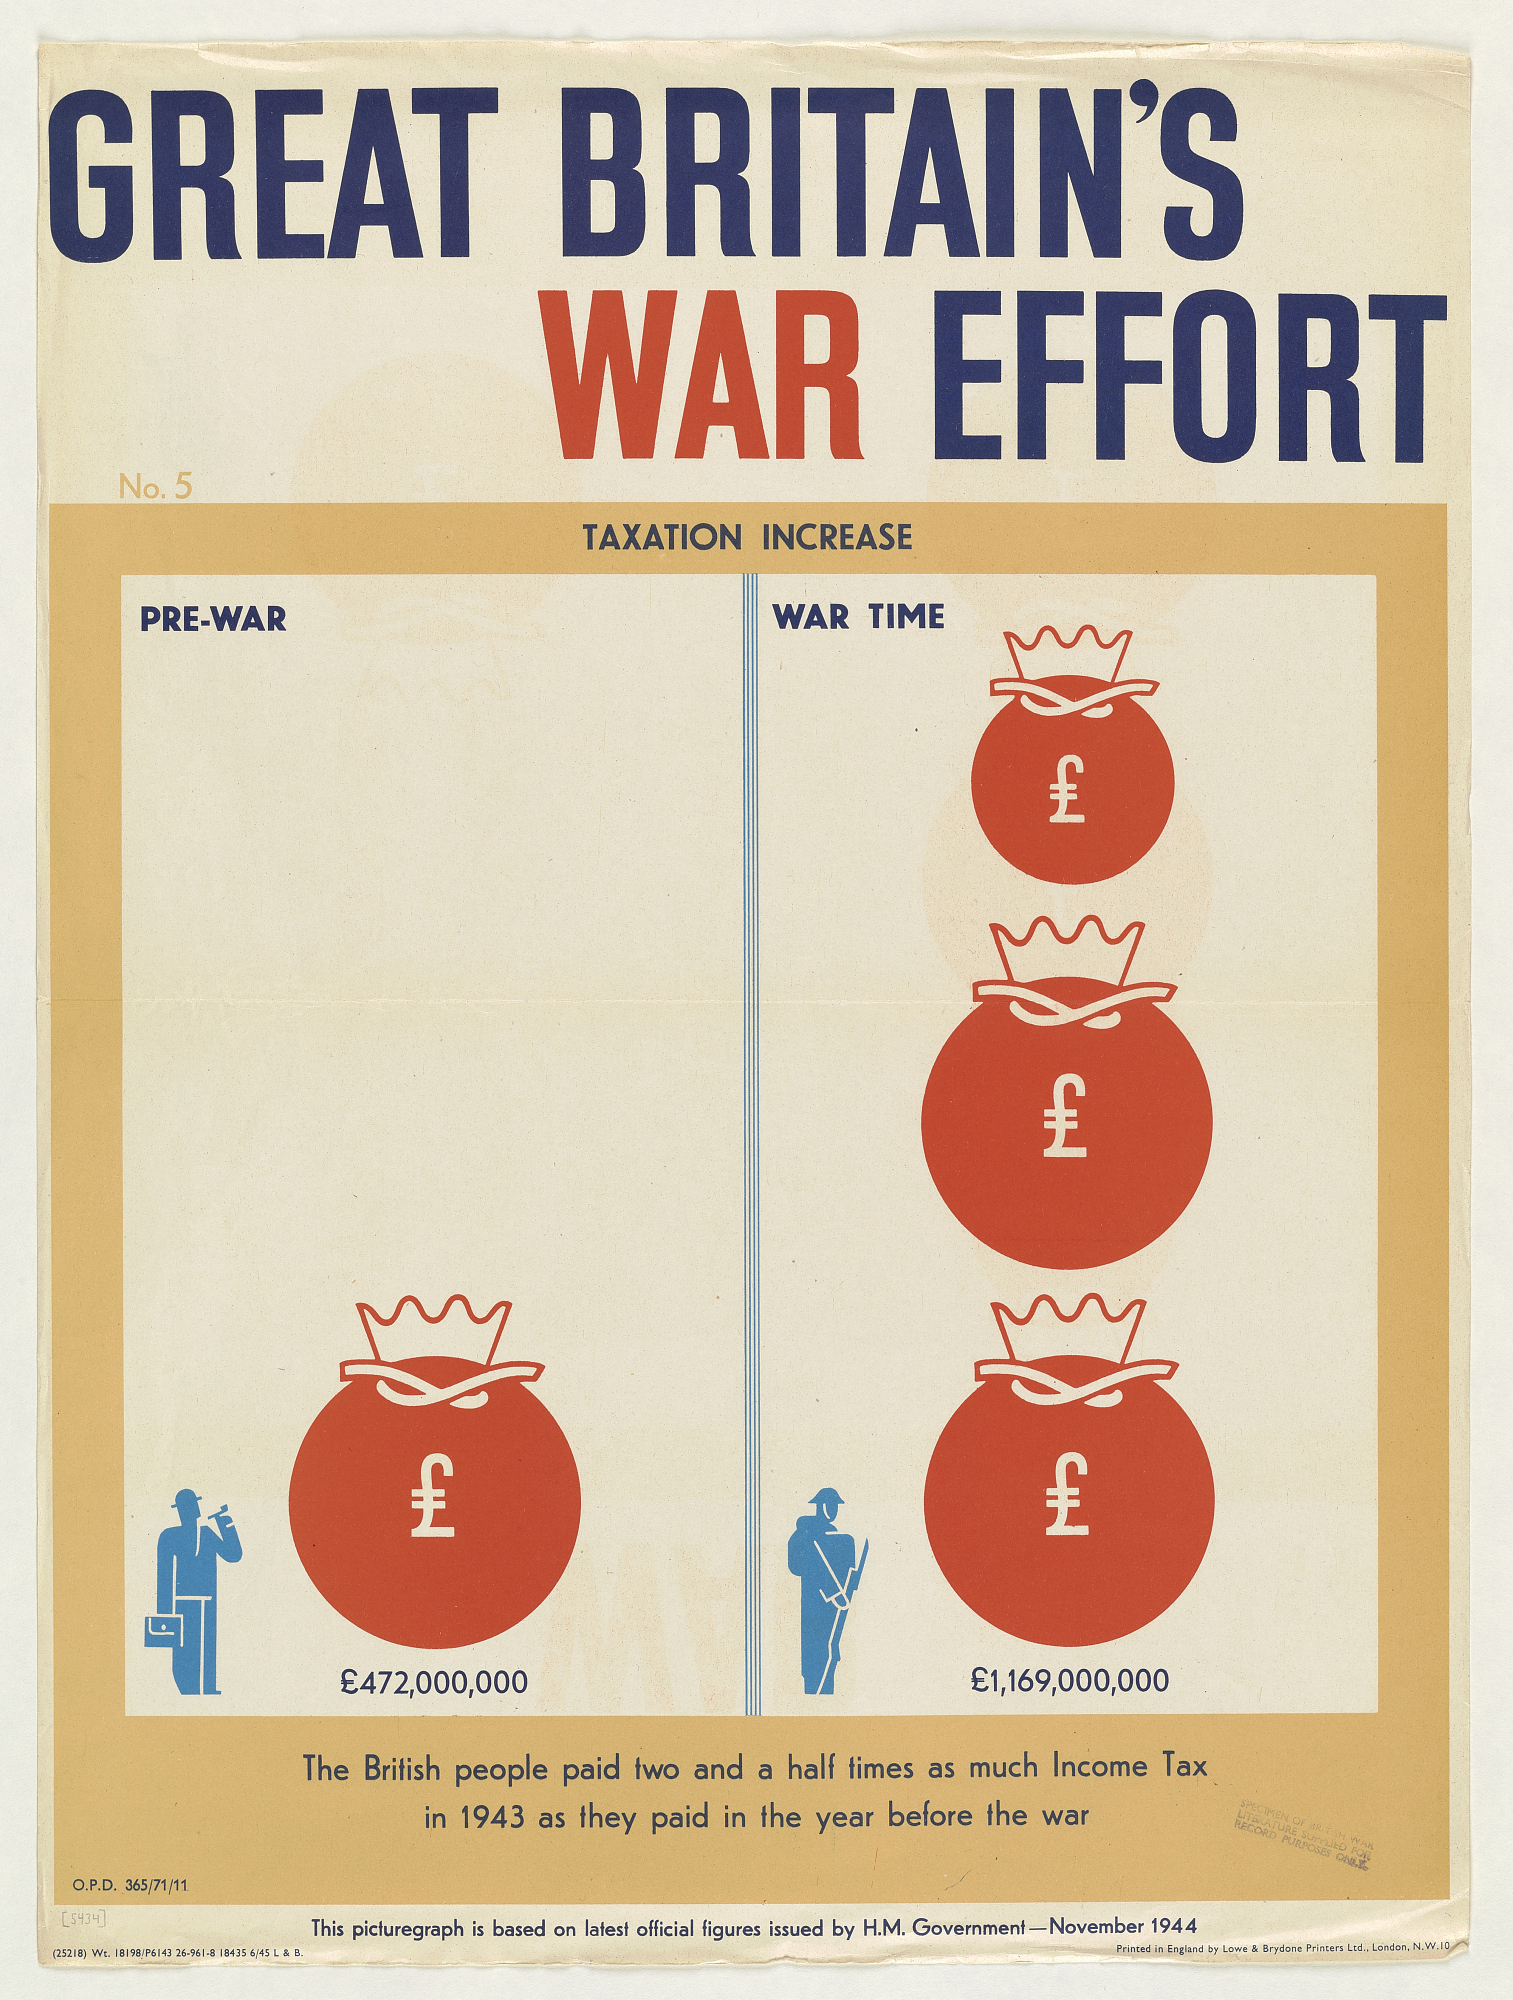 Great Britain's War Effort Taxation Increase / the British People Paid Two and a Half Times as Much Income Tax in 1943 as They Paid in the Year Before the War